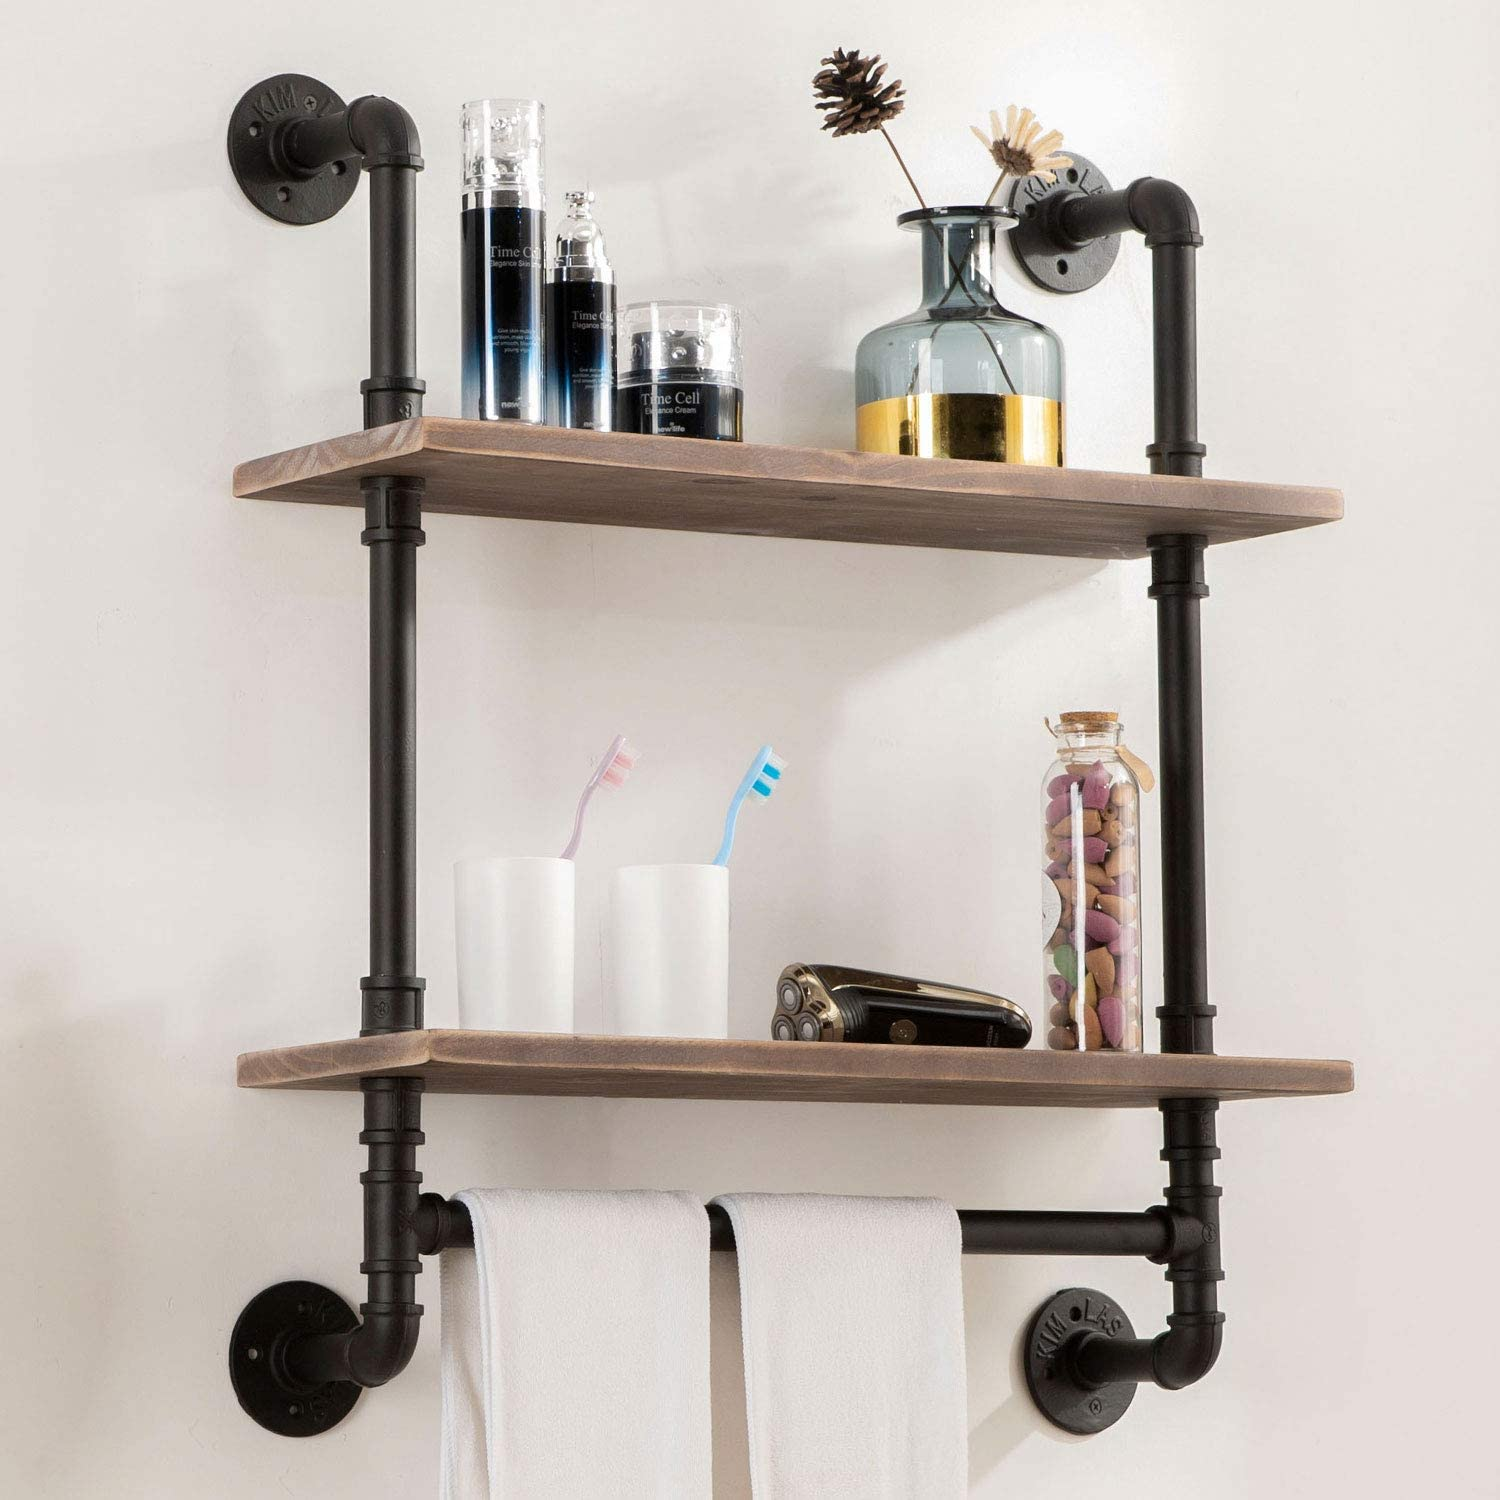 Industrial Pipe Shelving,Iron Pipe Shelves Industrial Bathroom Shelves with Towel bar,24 in Rustic Metal Pipe Floating Shelves Pipe Wall Shelf,2 Tier Industrial Shelf Wall Mounted with Hook ROGMARS